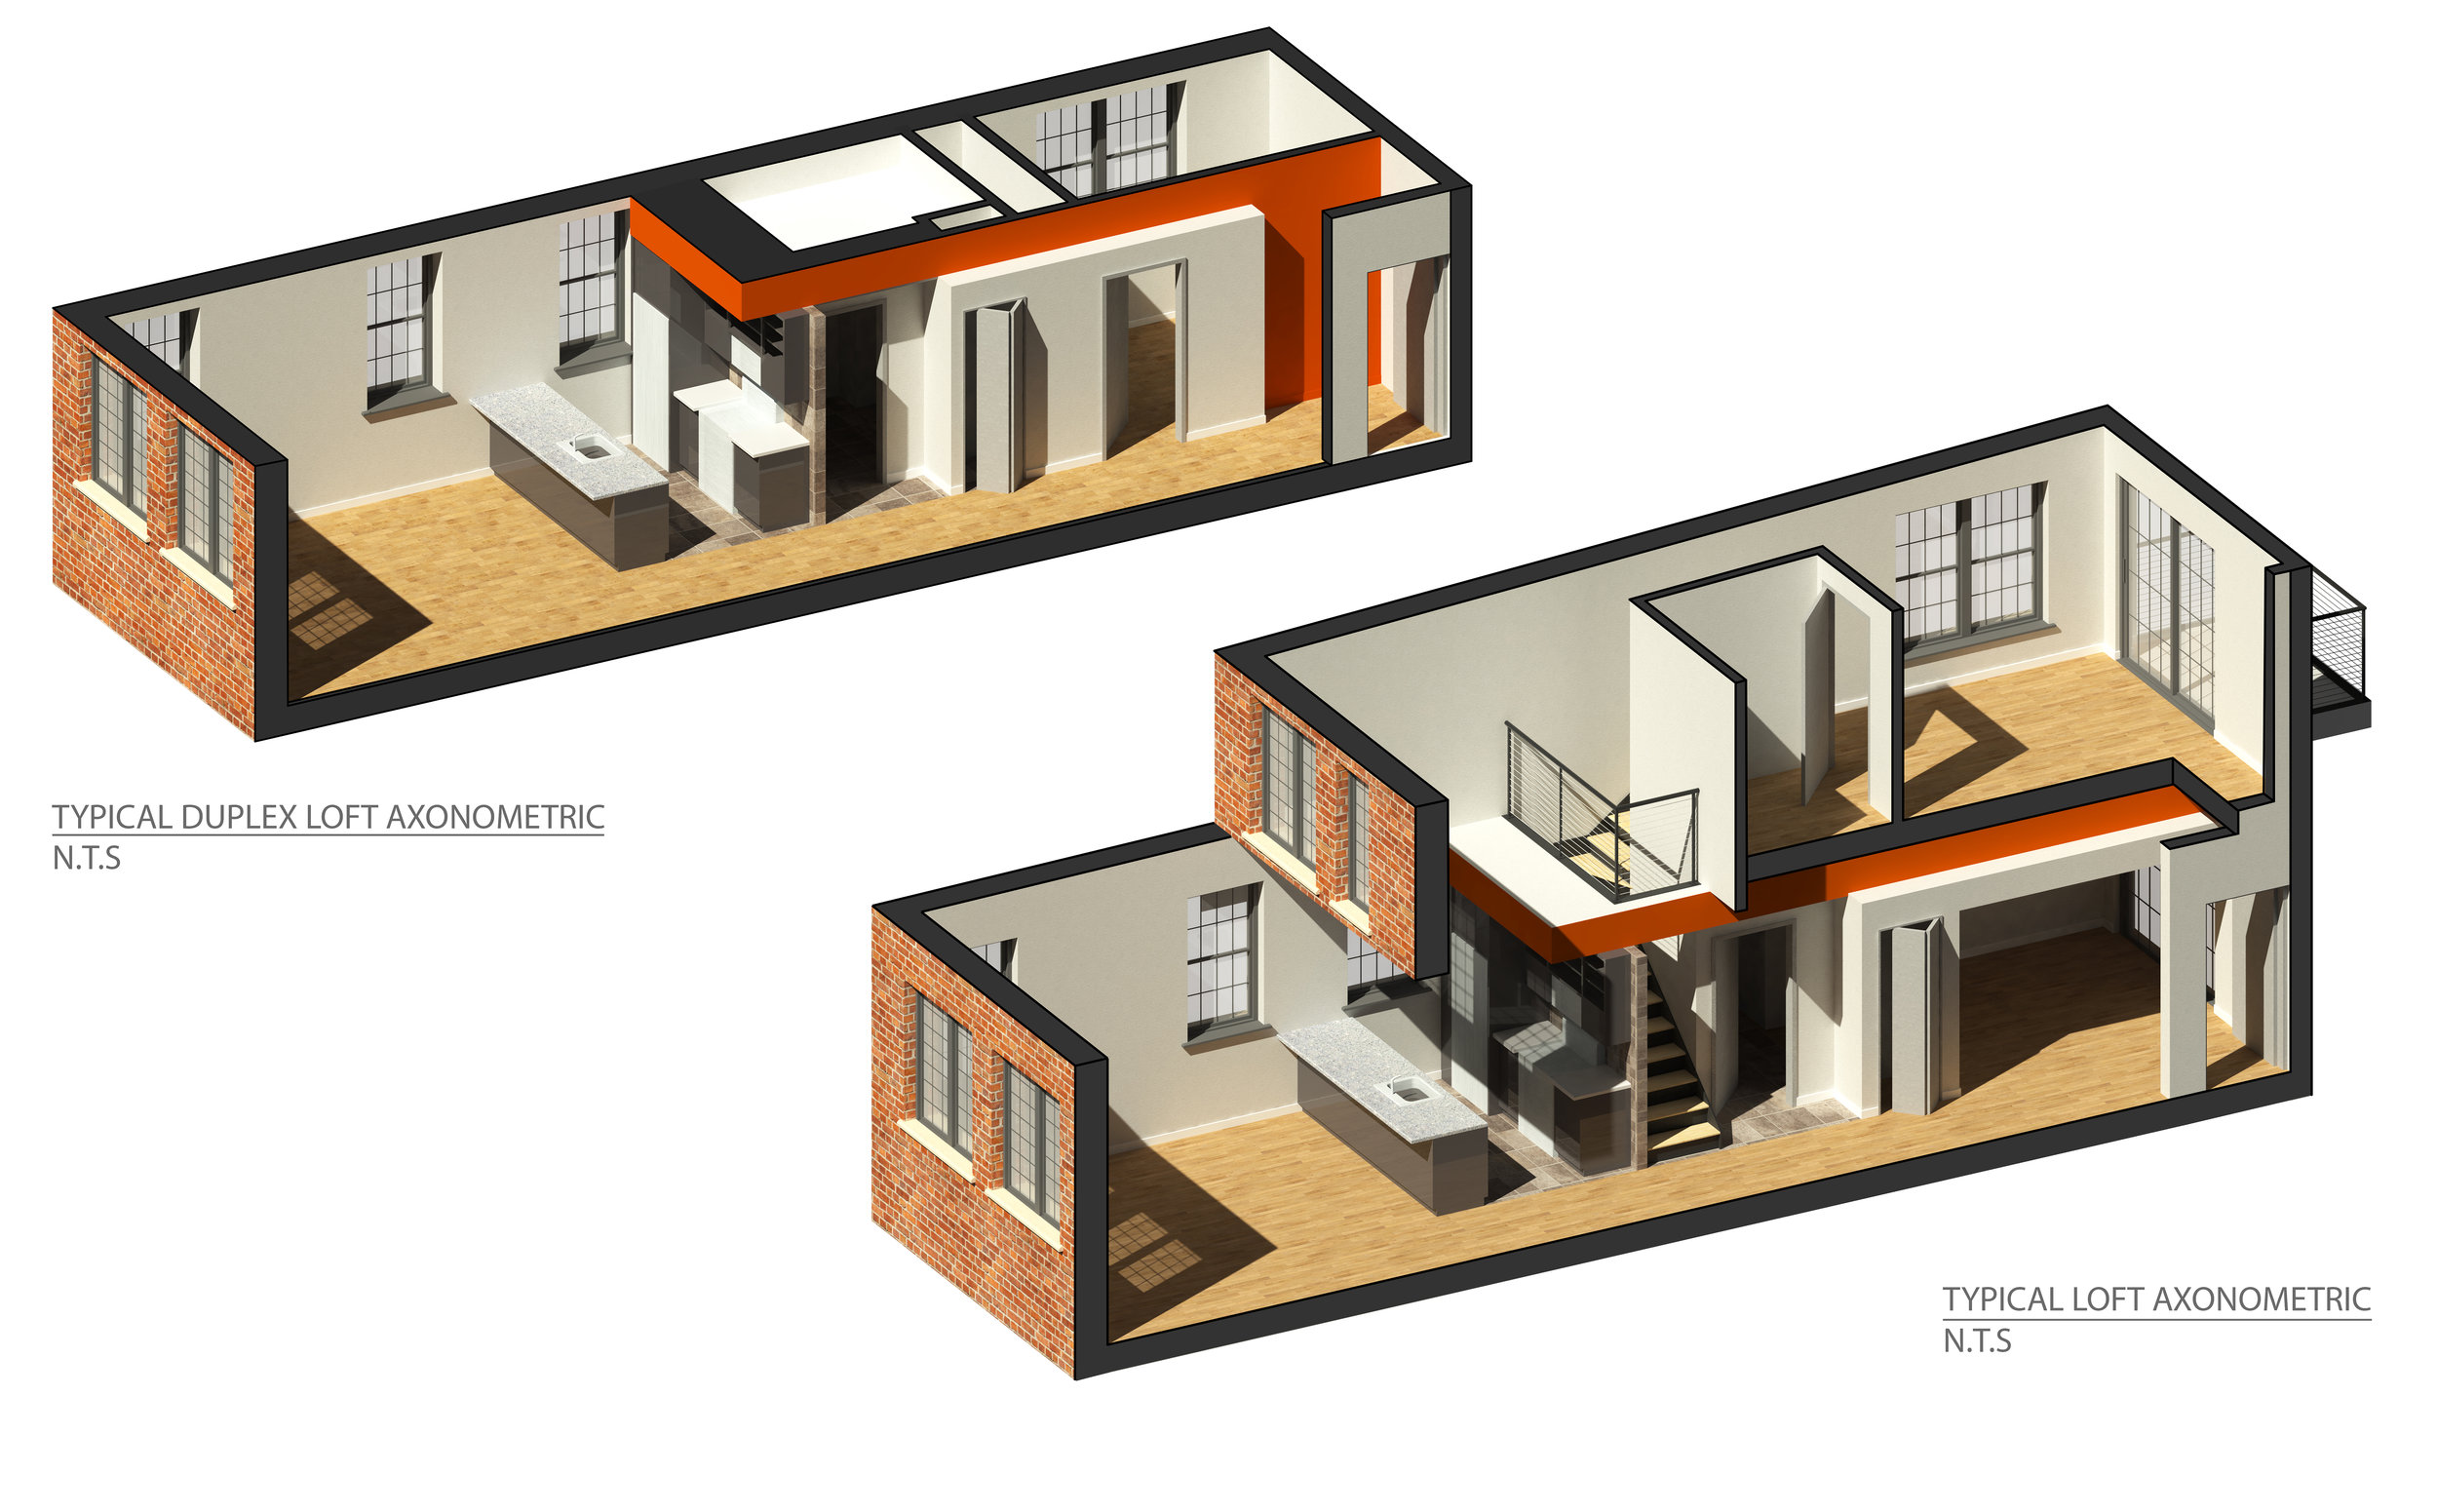 2015-07-14 AXONOMETRIC VIEW.jpg